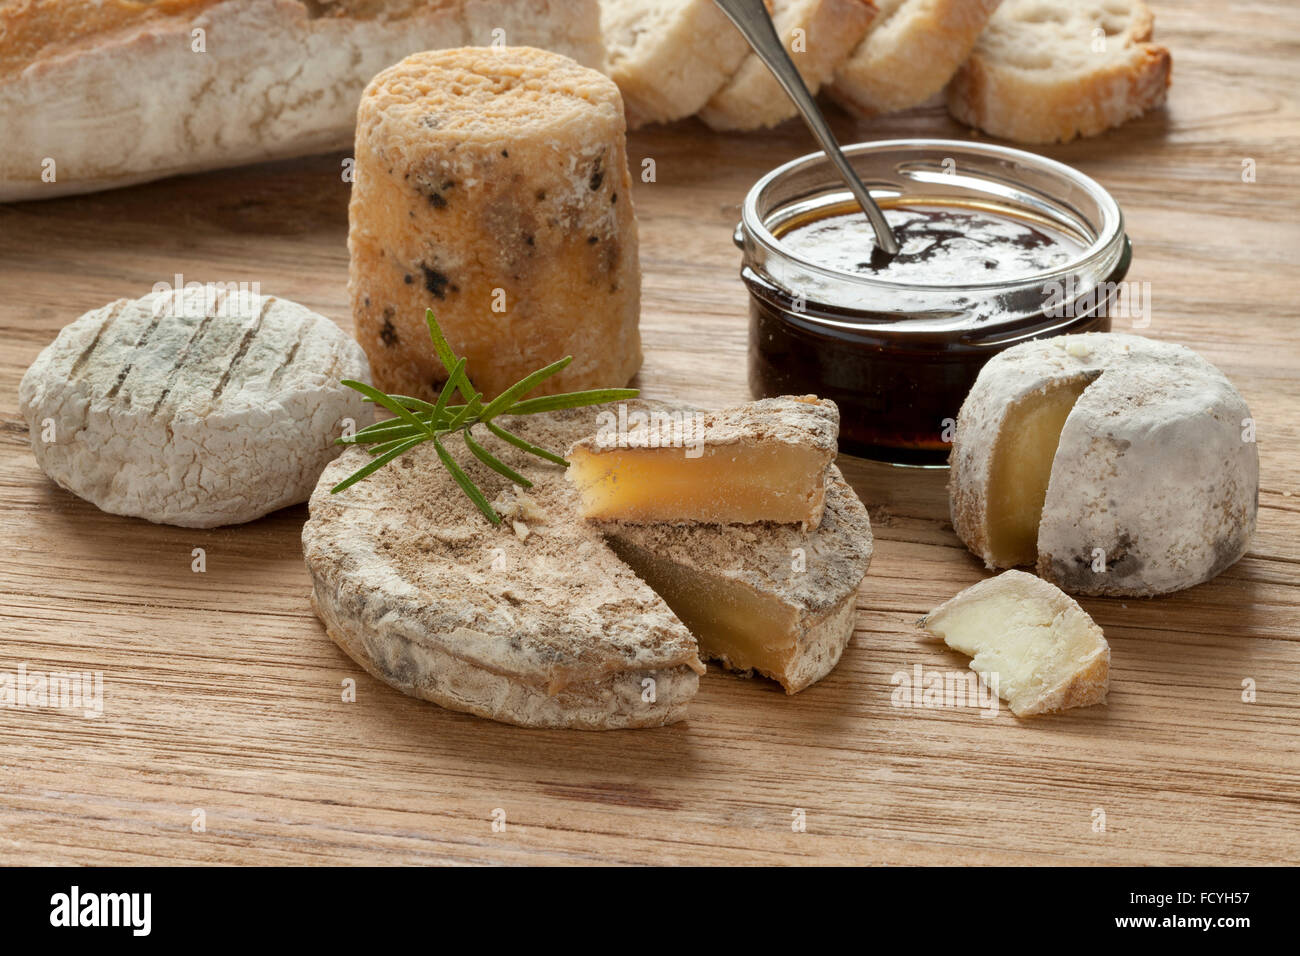 Traditional french goats cheeses called chevre chabichou,chevre pico,chevre d'or - Stock Image